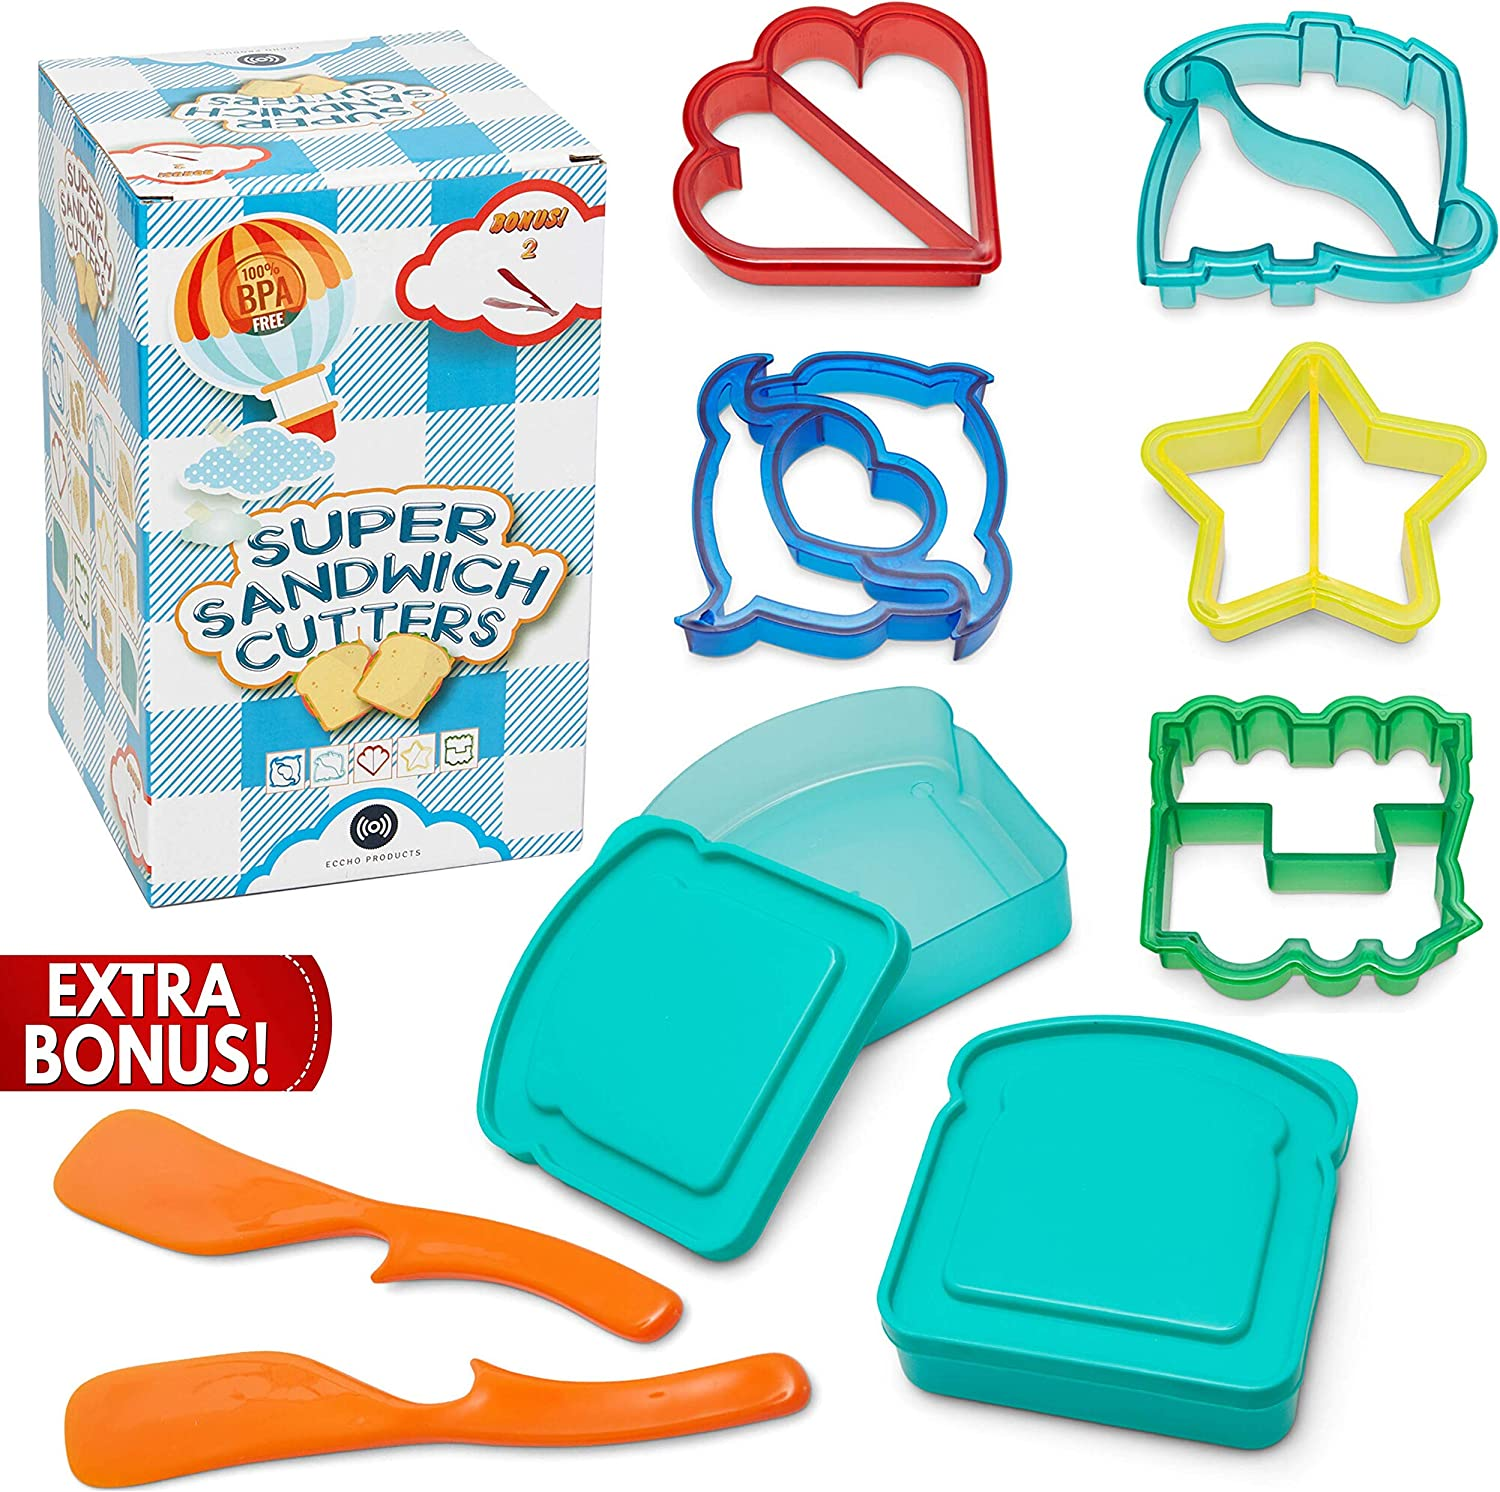 Eccho Products Super Sandwich Cutters for Kids, Bento Lunch Box Accessories, 2 Sandwich Containers, 2 Bonus Condiment Spreaders, BPA Free Plastic, Set of 5